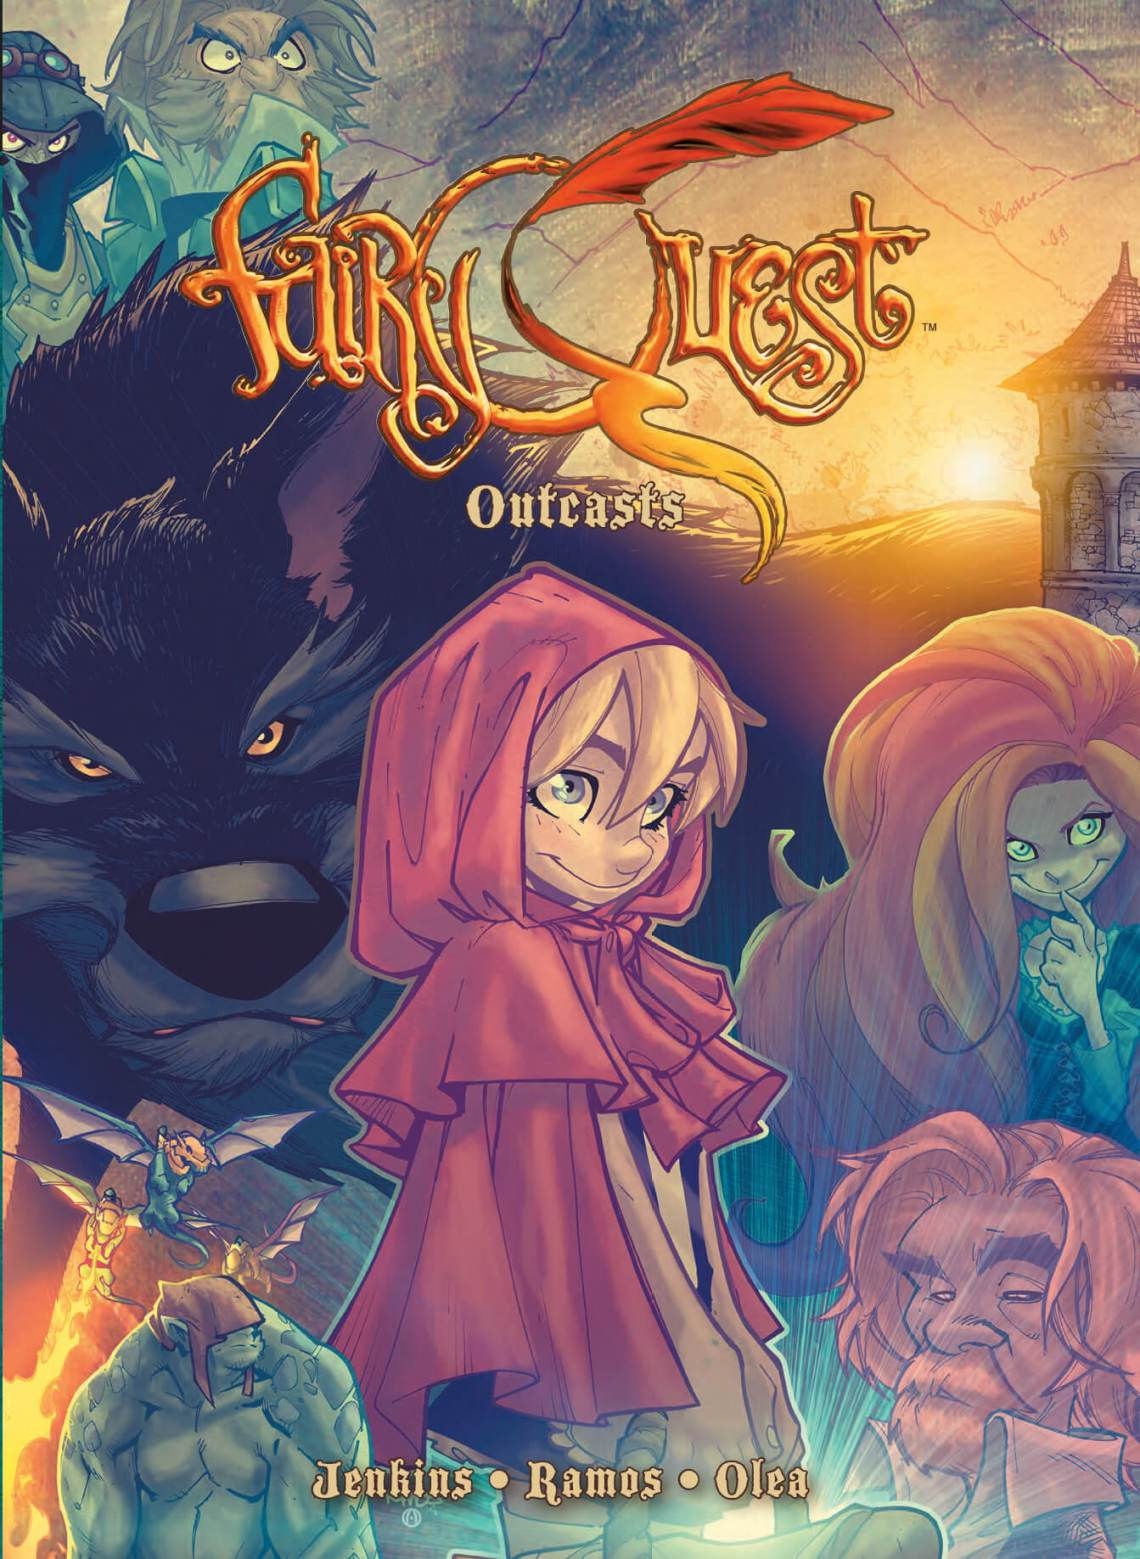 FairyQuest_Outcasts_TPB_cover